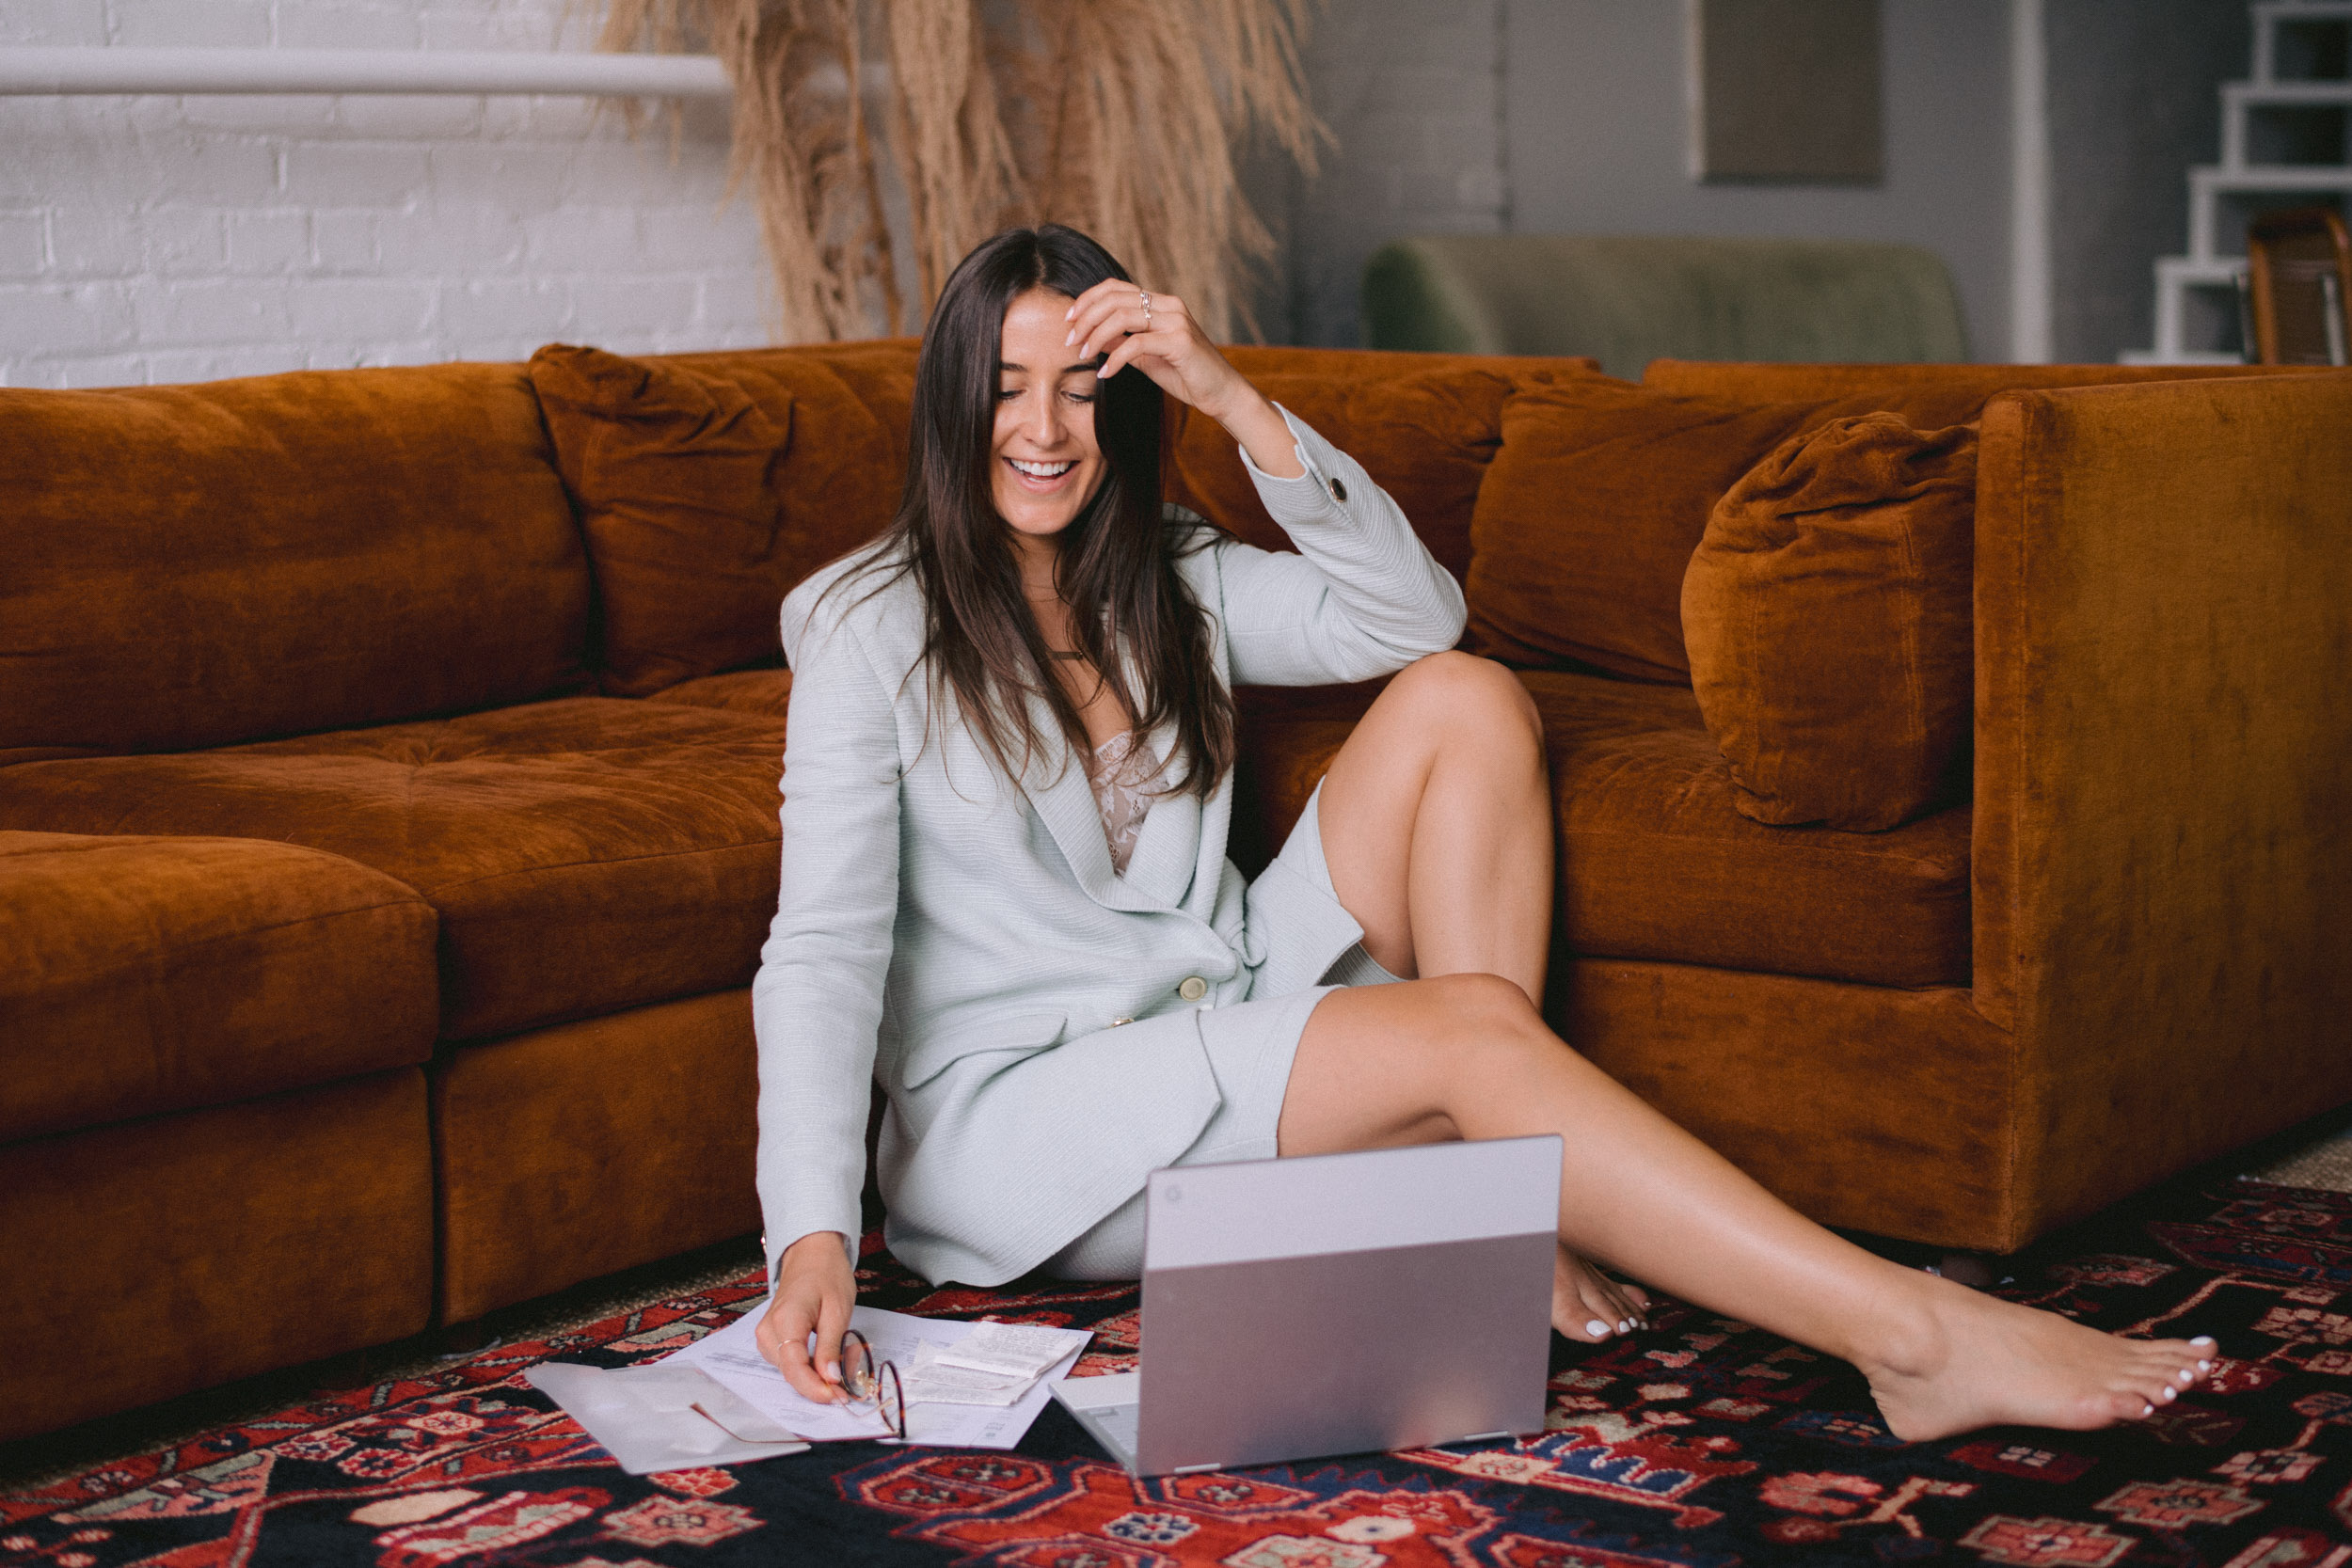 """Listen to the testimonials… - """"Her years of accounting experience were very evident as she knew exactly what I needed to do for my business and showed me how to organize it and helped me create a proper system for it all""""-Cassie Day, Founder All Day Fit"""